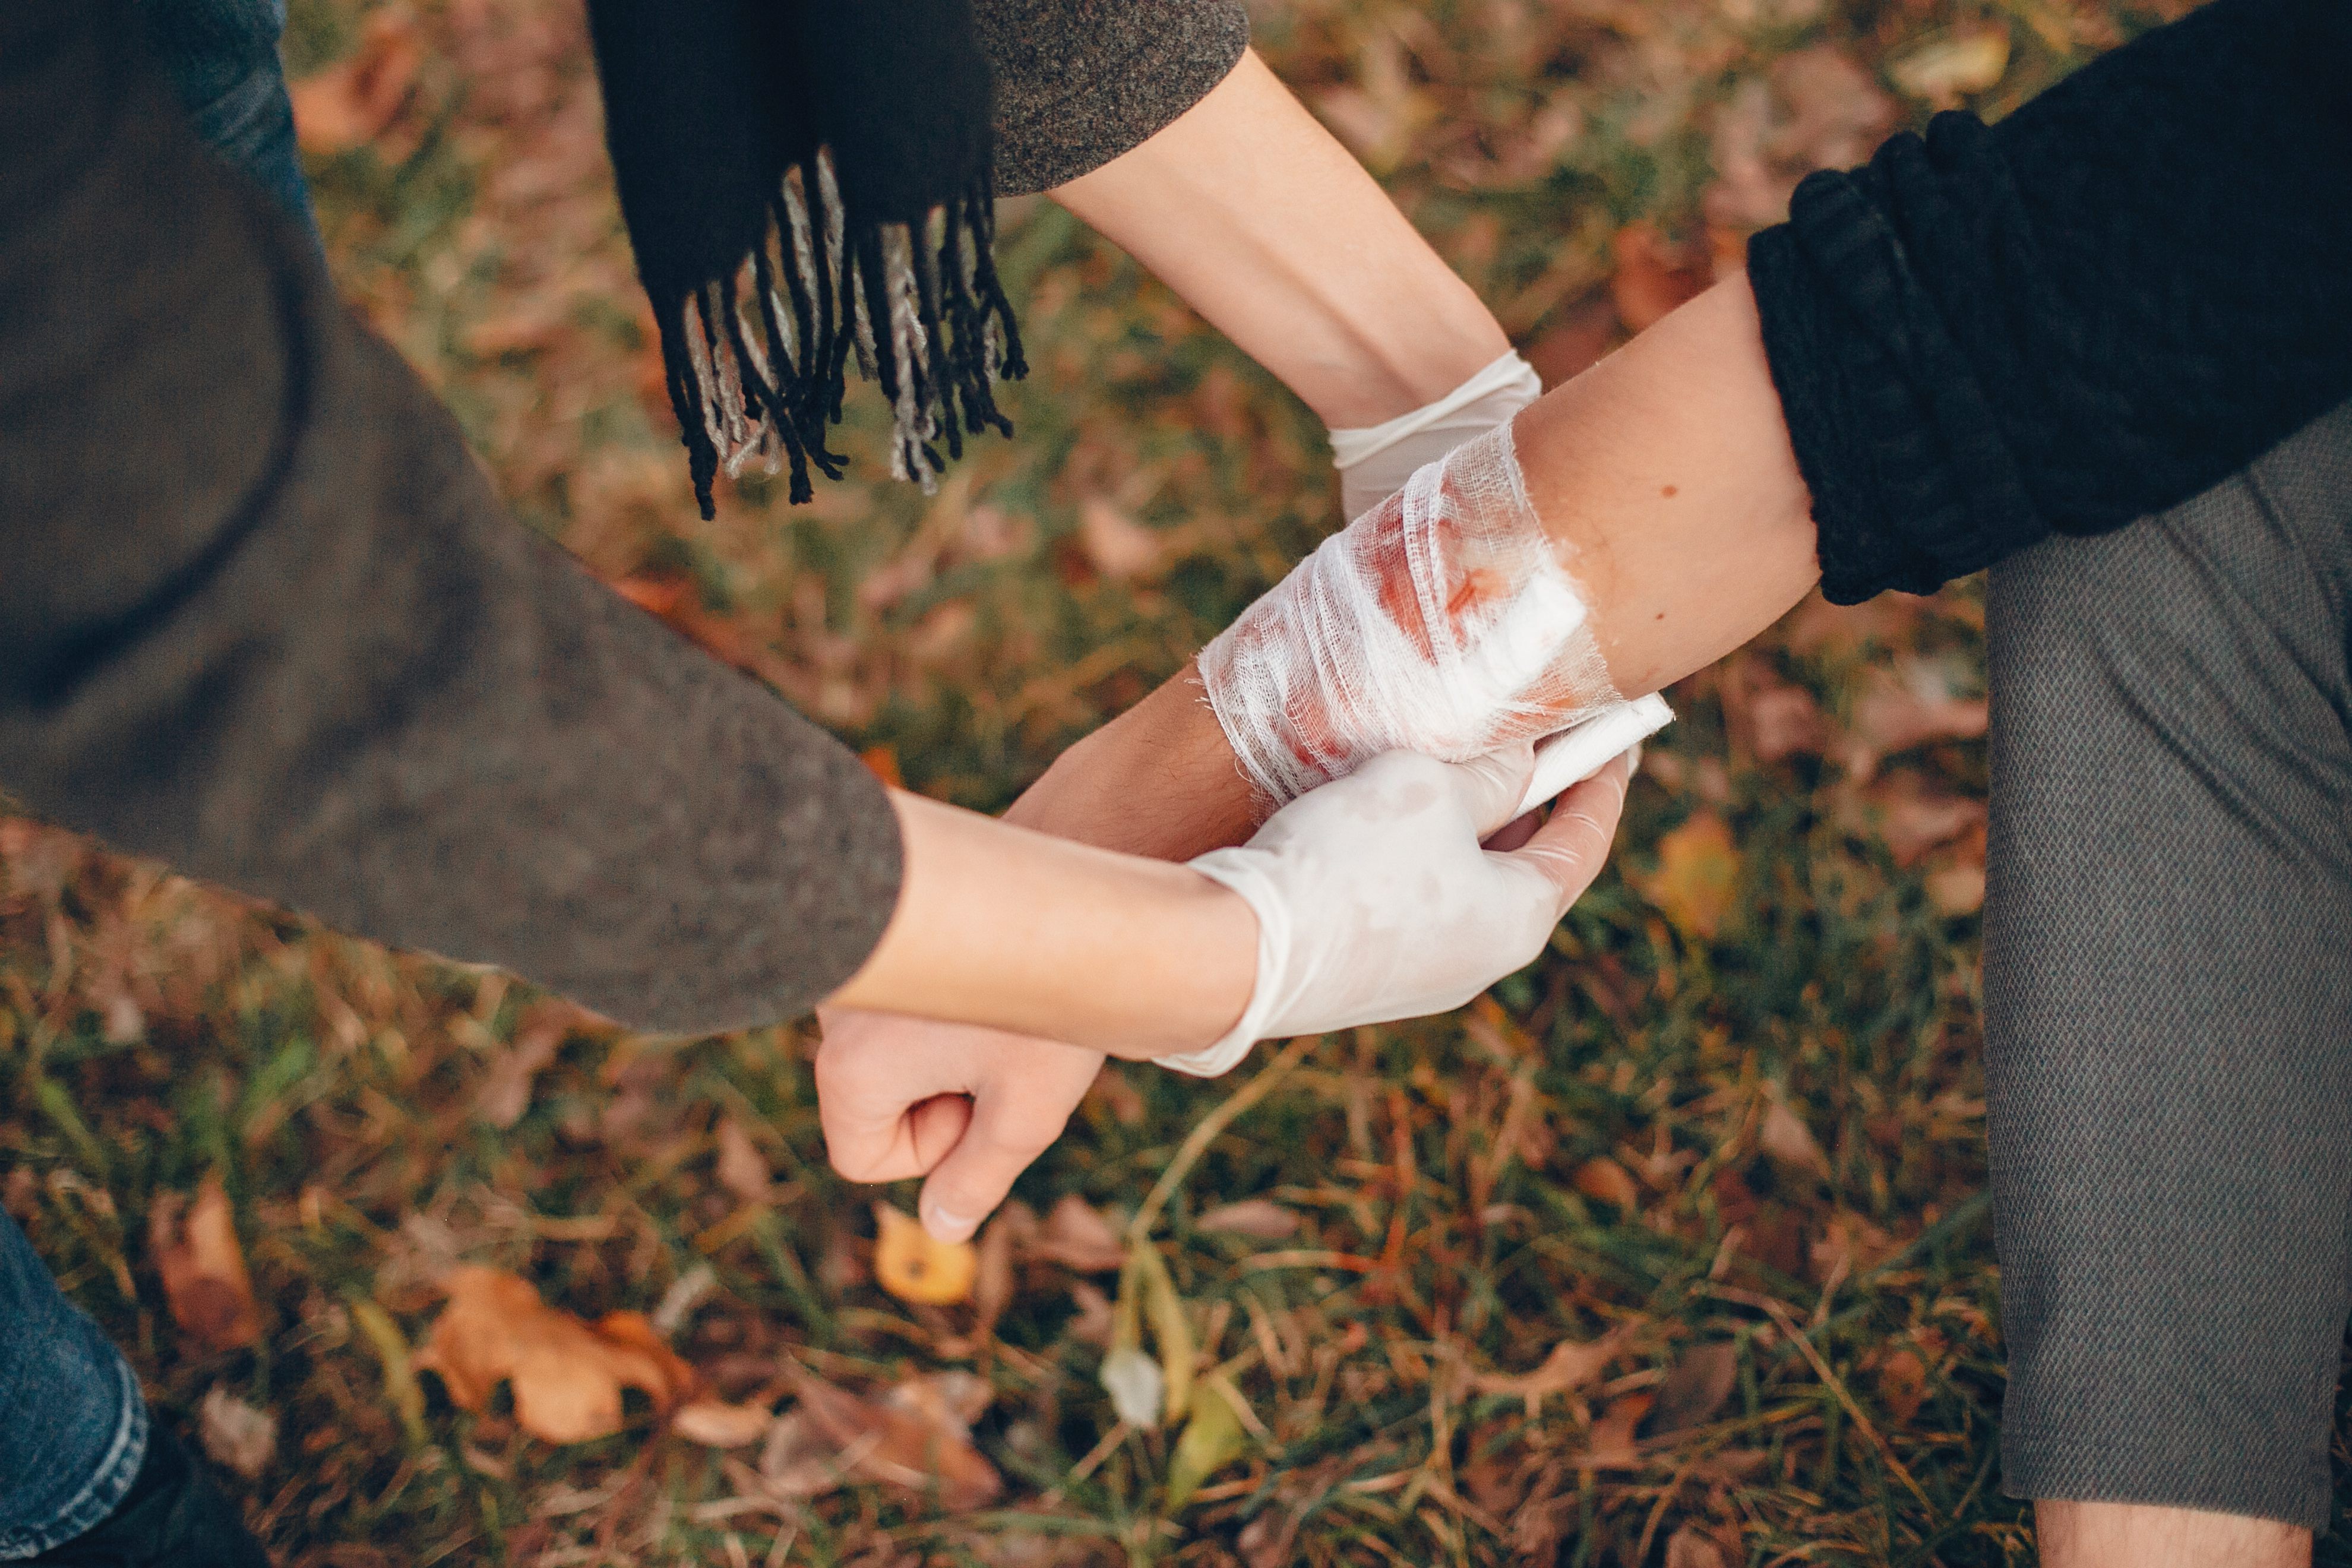 providing first aid park man bandaged injured arm guy helps friend